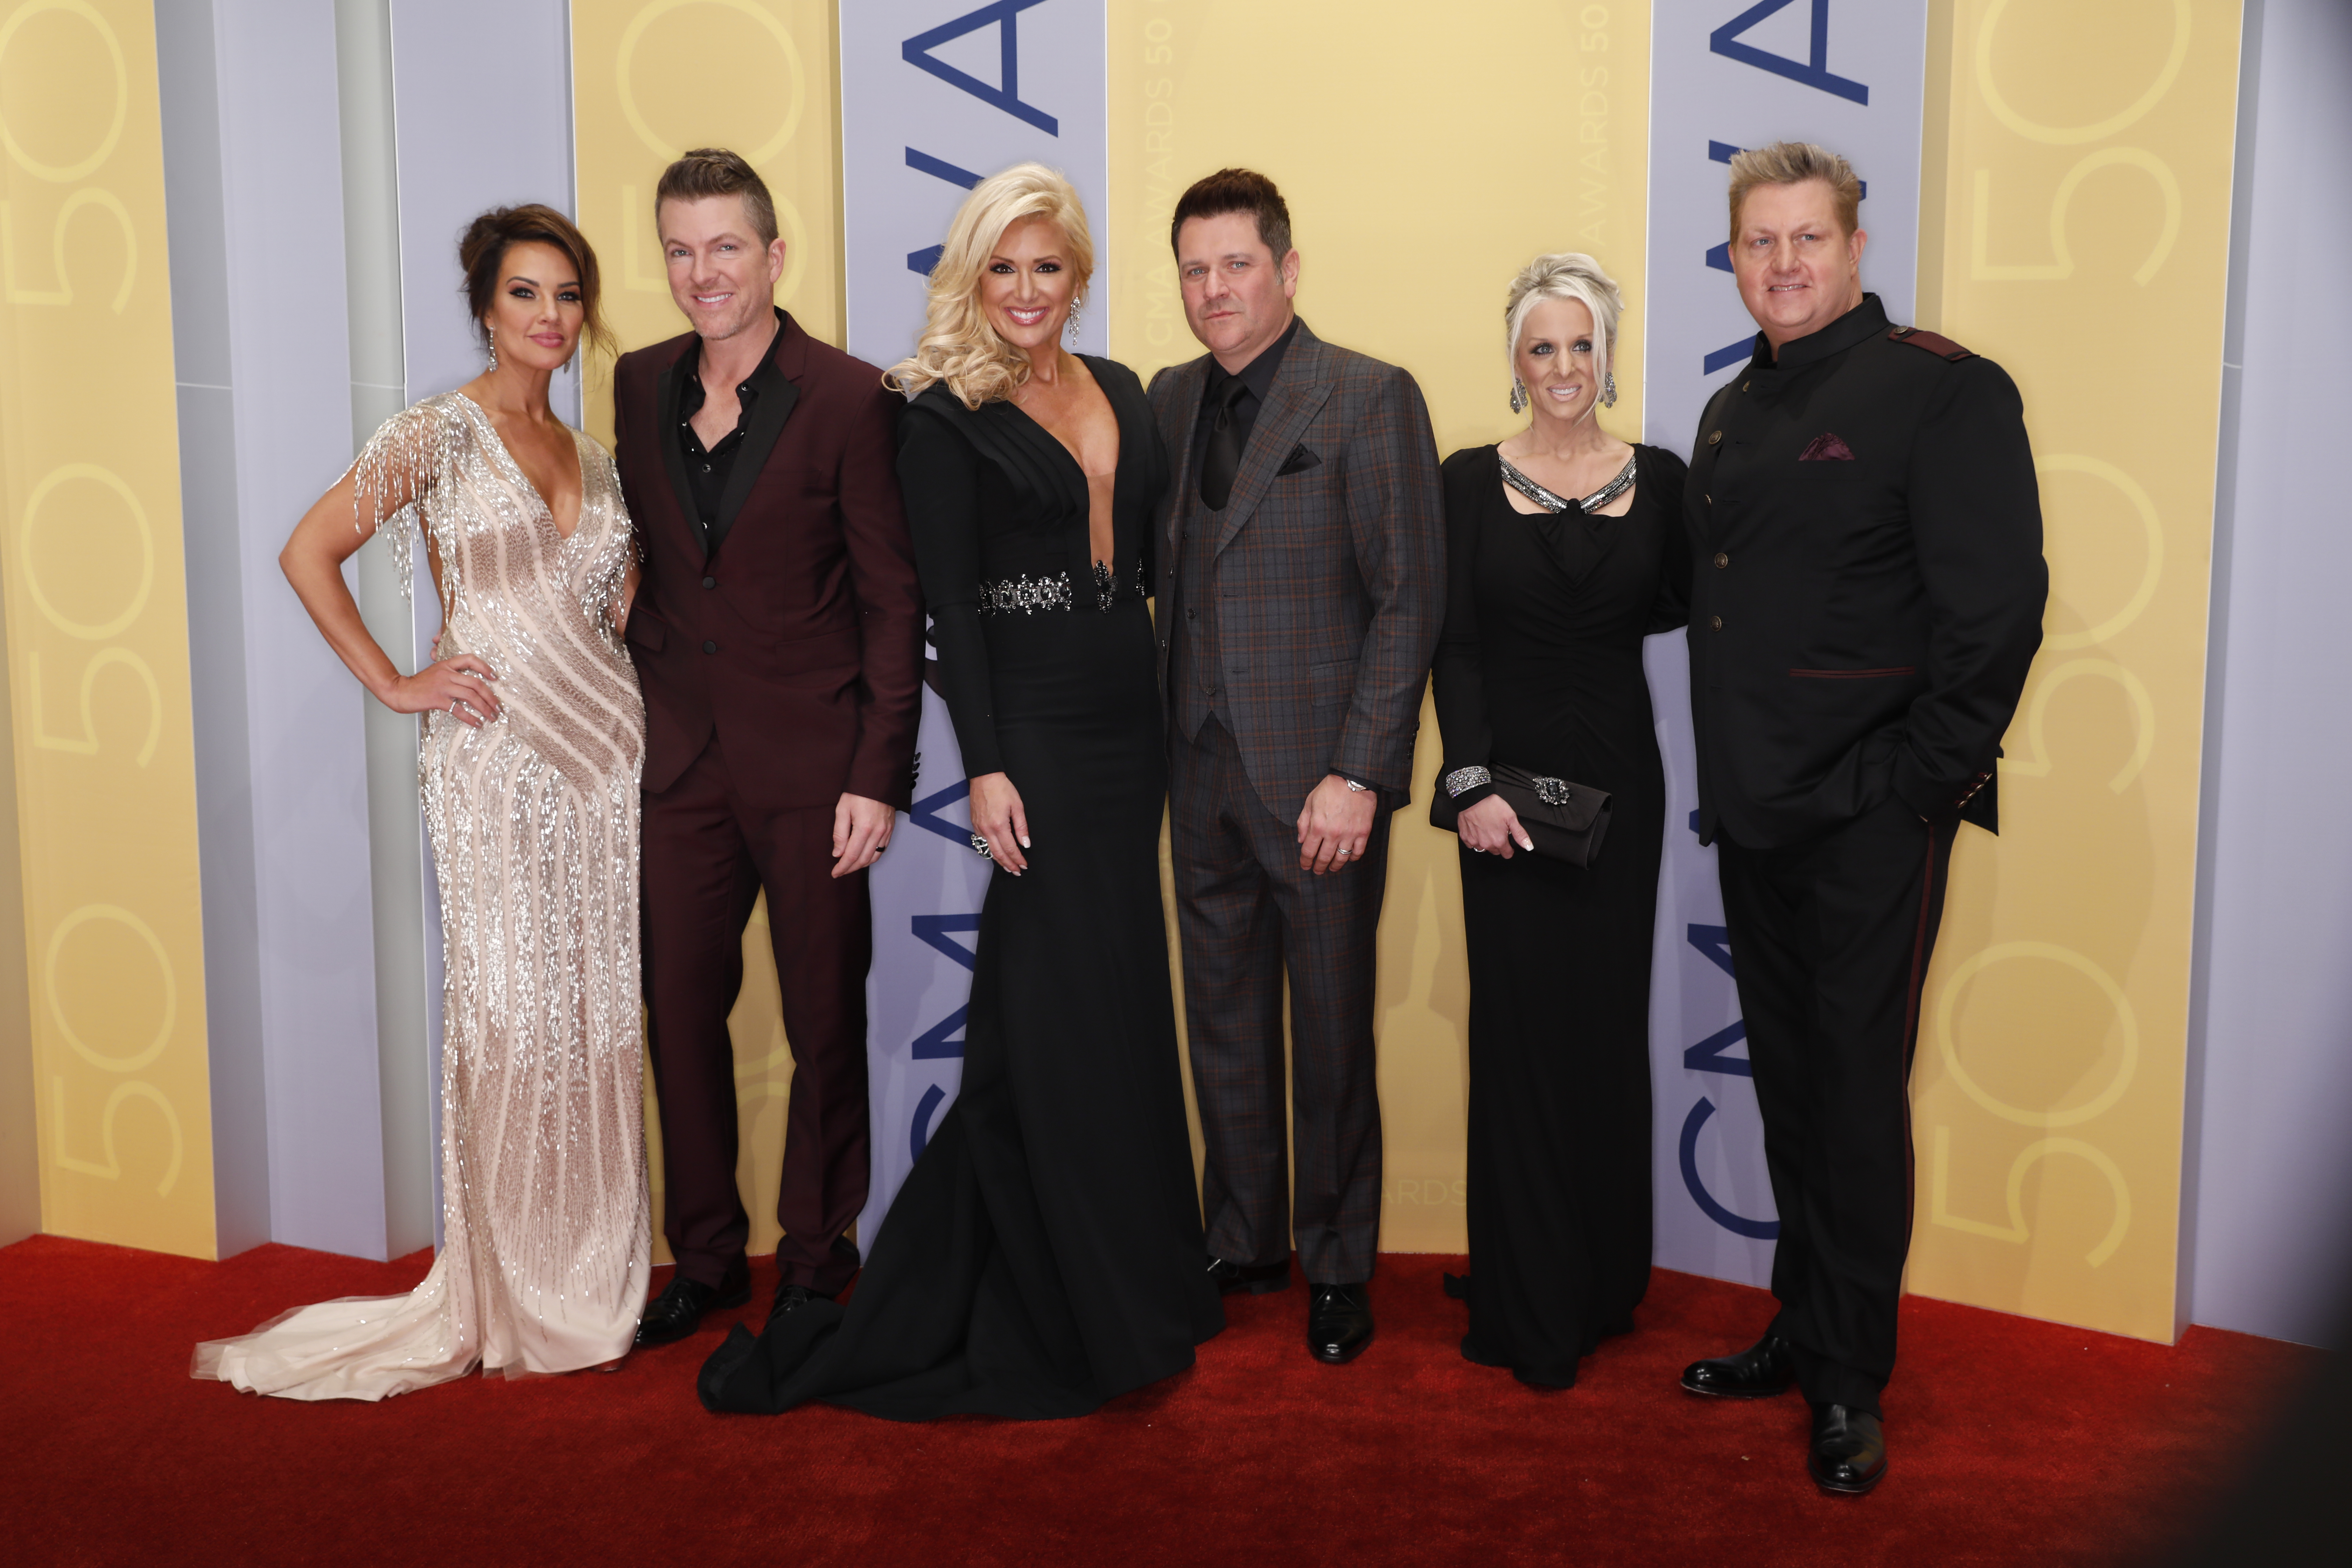 PHOTOS: 50th Annual CMA Awards – Red Carpet Arrivals | Sounds Like ...